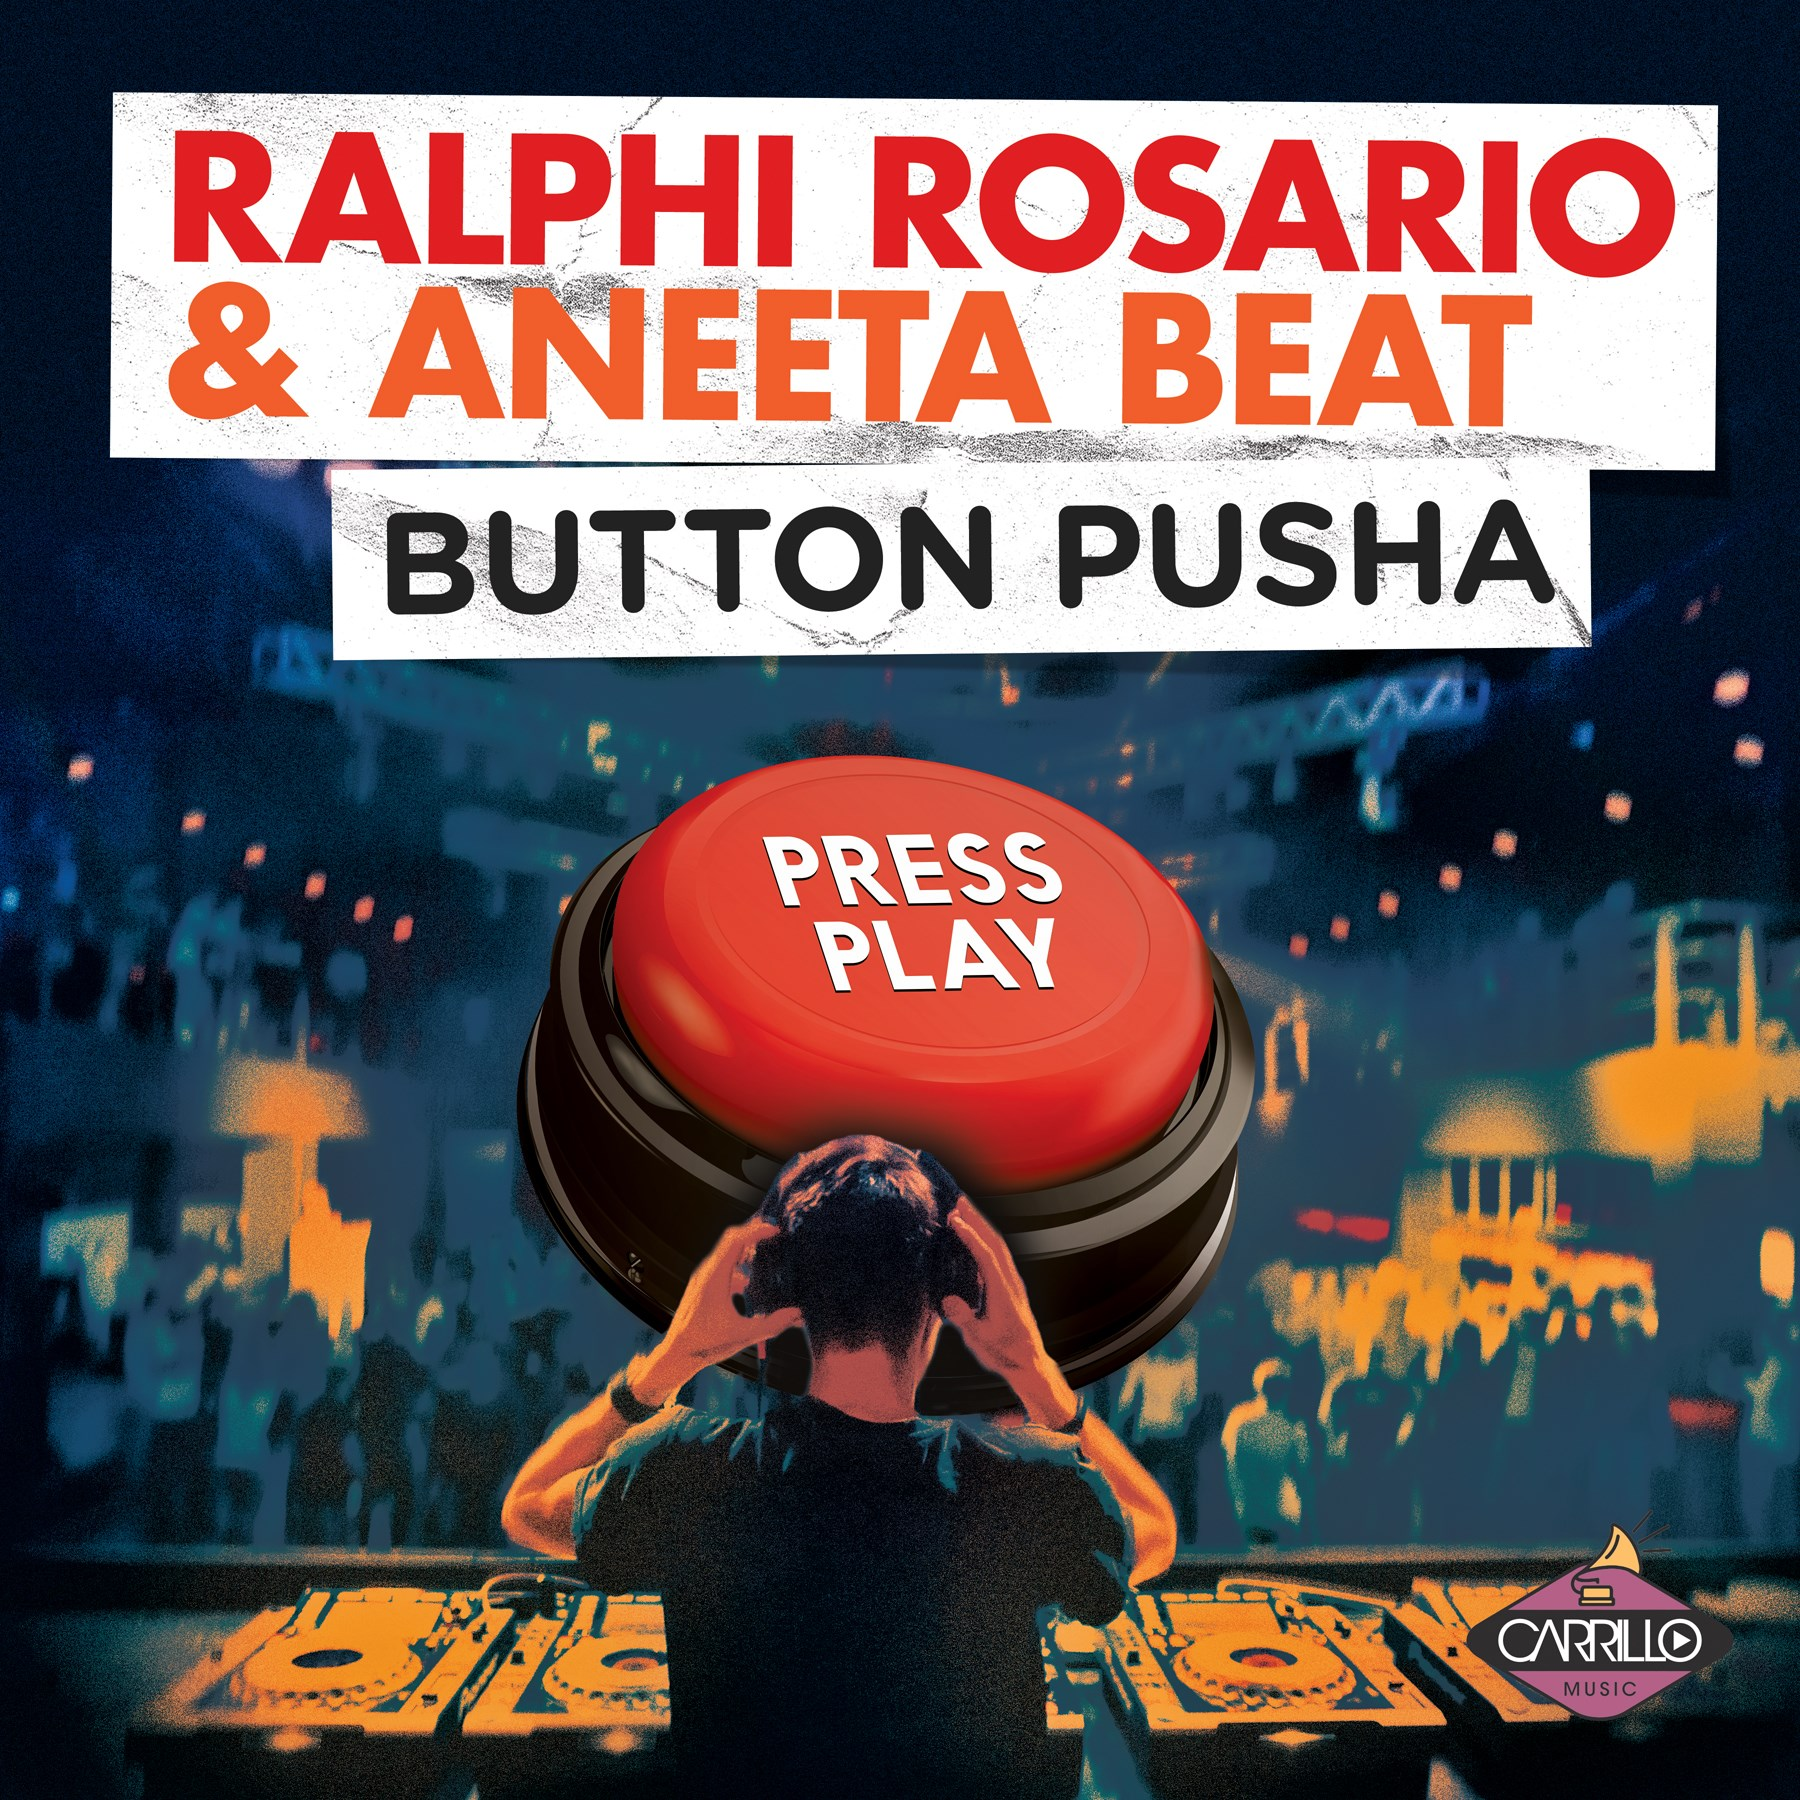 Button Pusha - Ralphi Rosario & Aneeta Beat